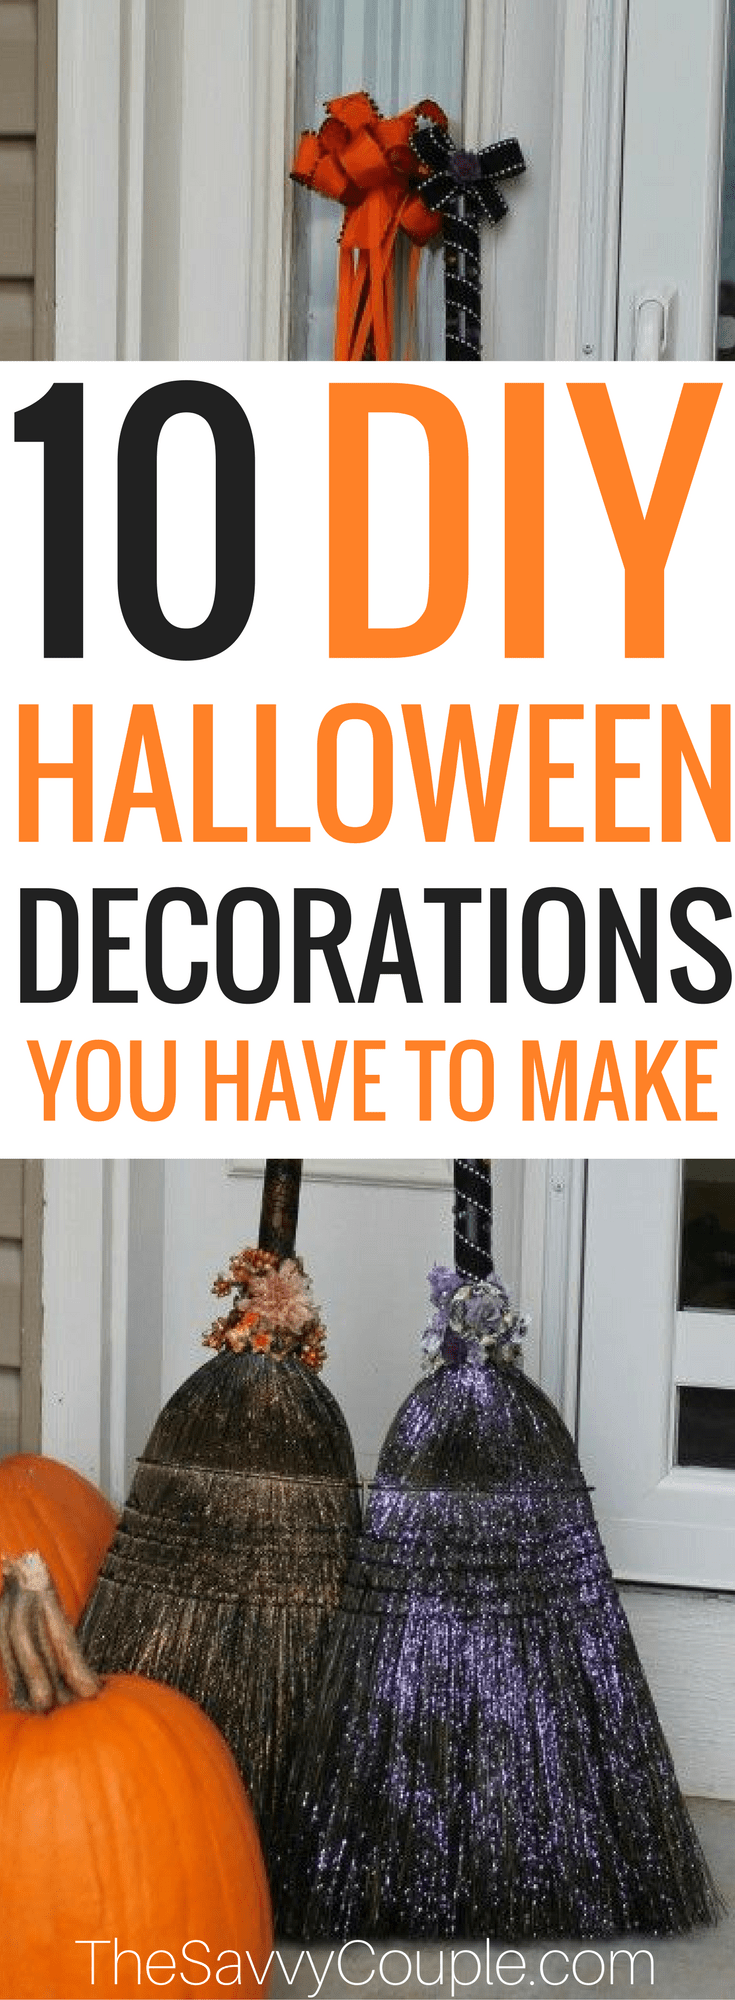 Cheap Halloween Decorations That Will Make Your House ...